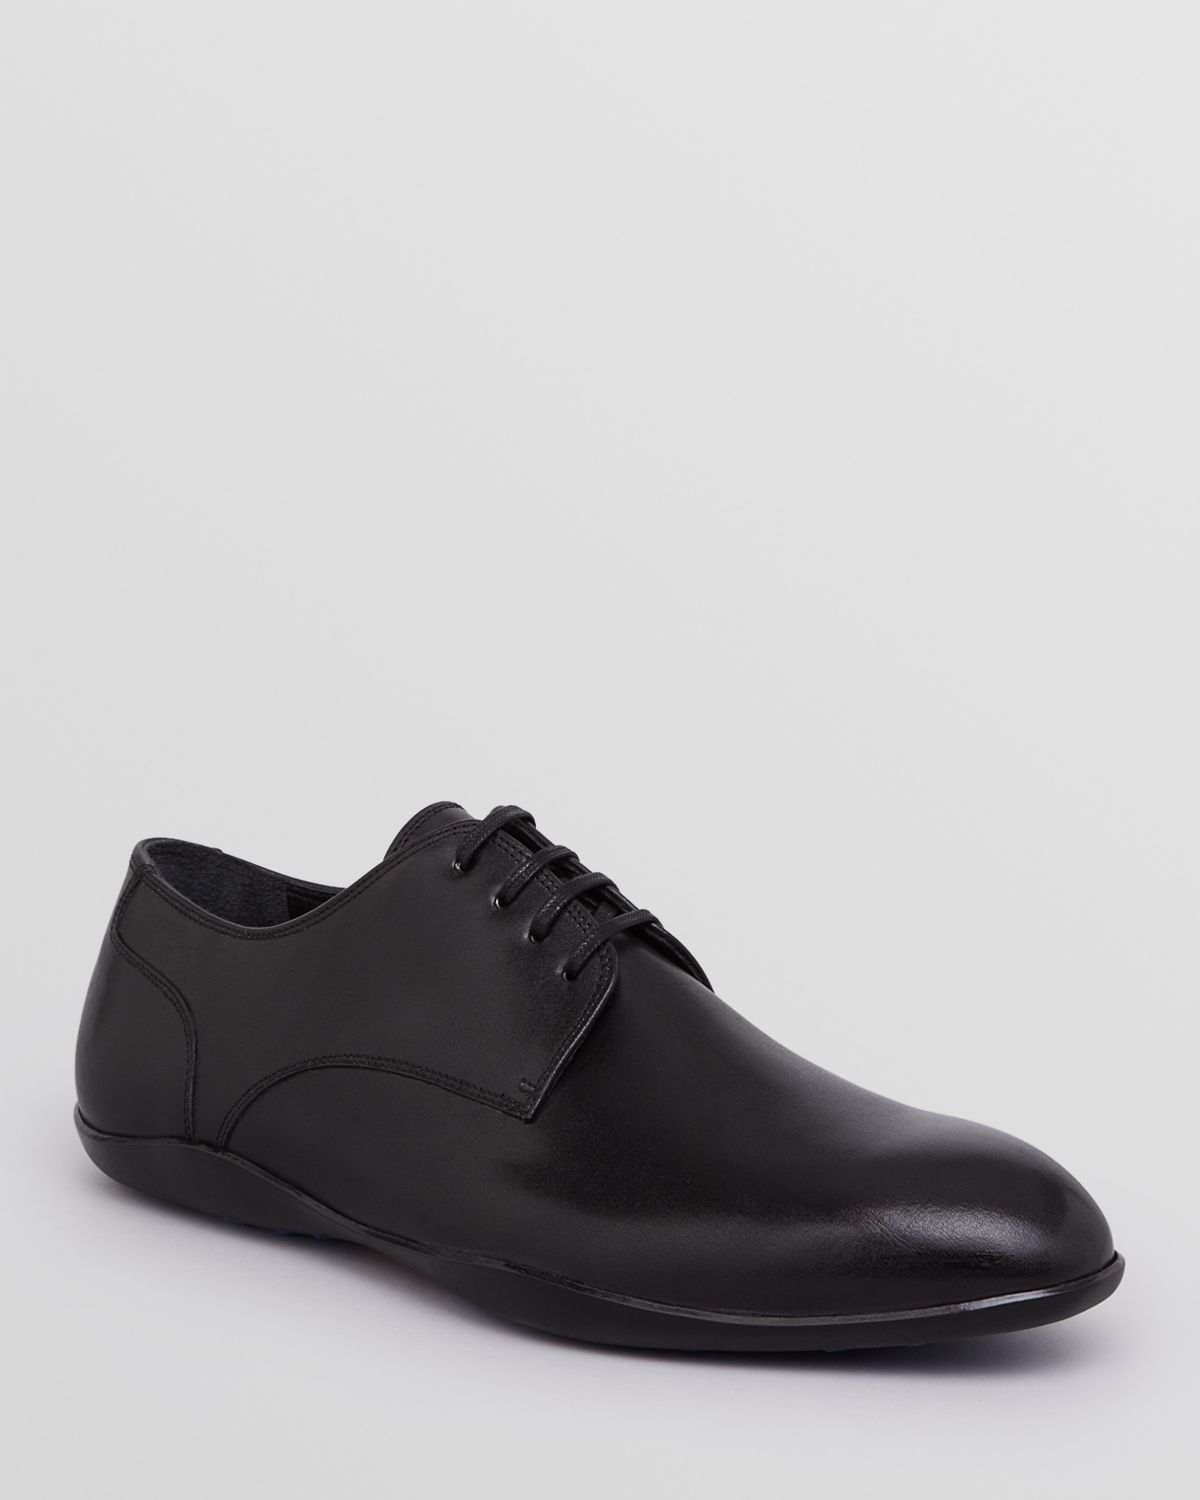 Of London Duncan Leather Derby Oxford